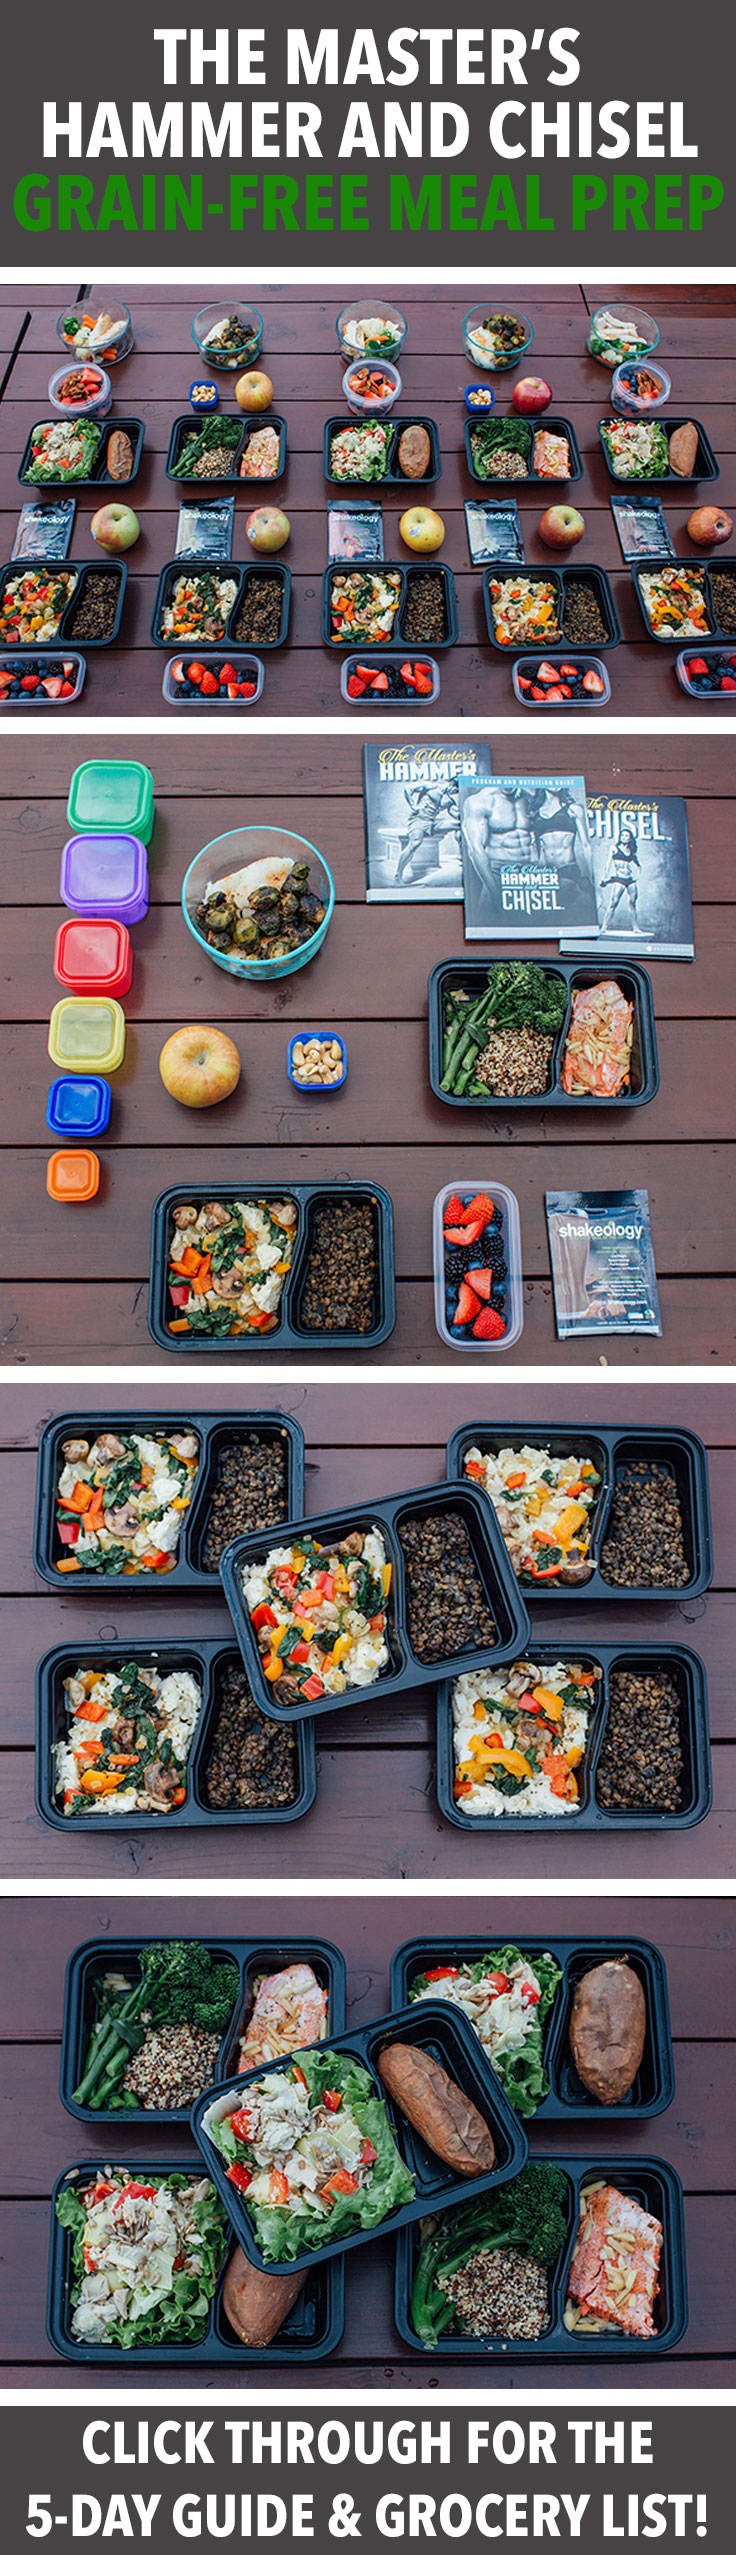 Go Grain Free with This 1,500-1,800 Calorie Meal Prep For The Master's Hammer and Chisel